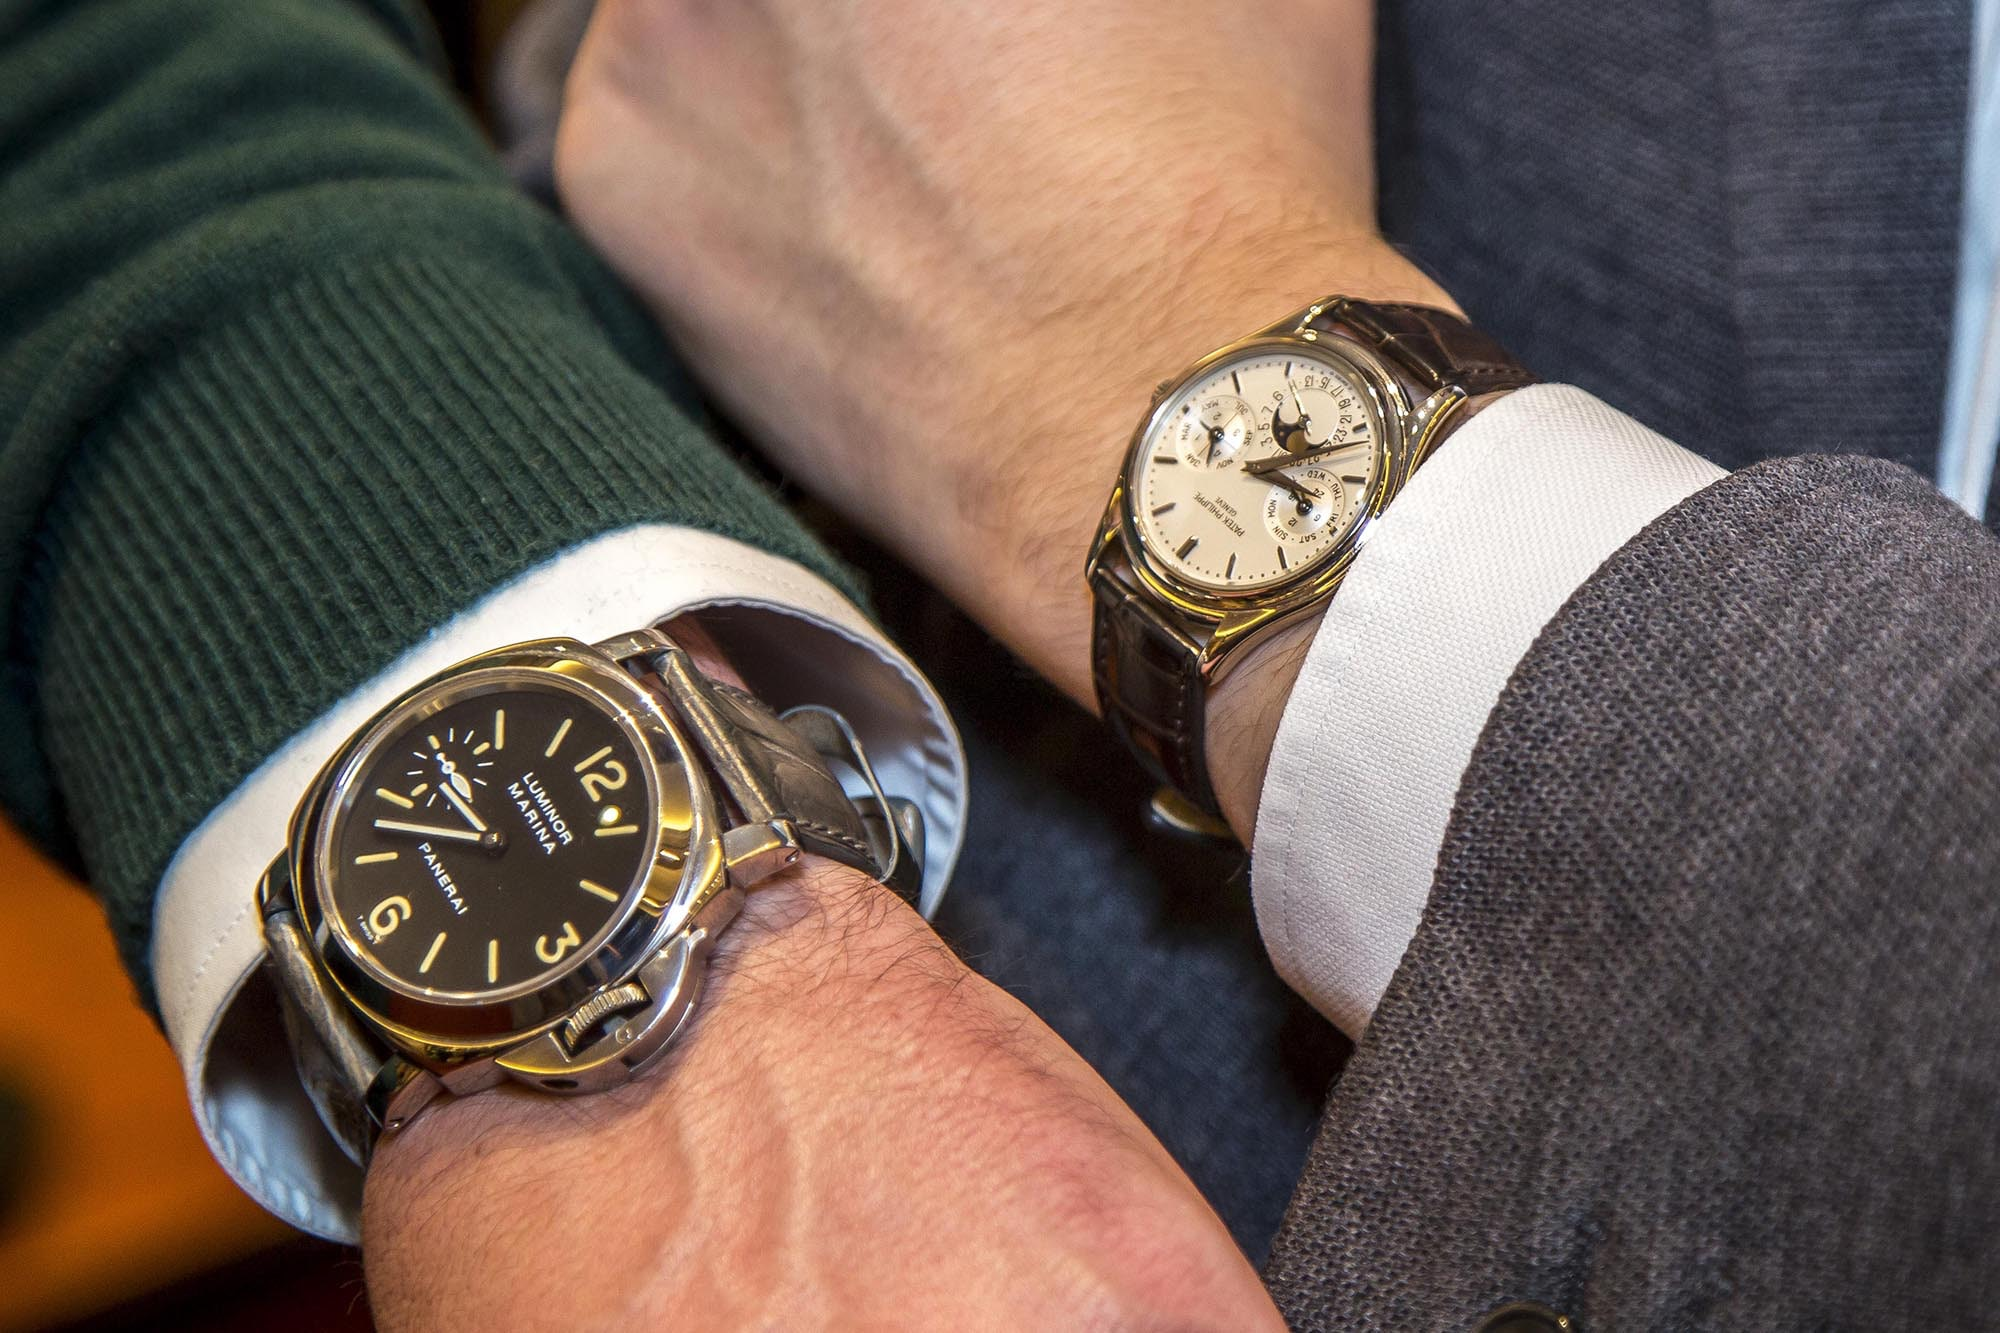 Photo Report: HODINKEE Hosts A Collector Get-Together At The Wempe Boutique In London Photo Report: HODINKEE Hosts A Collector Get-Together At The Wempe Boutique In London 2